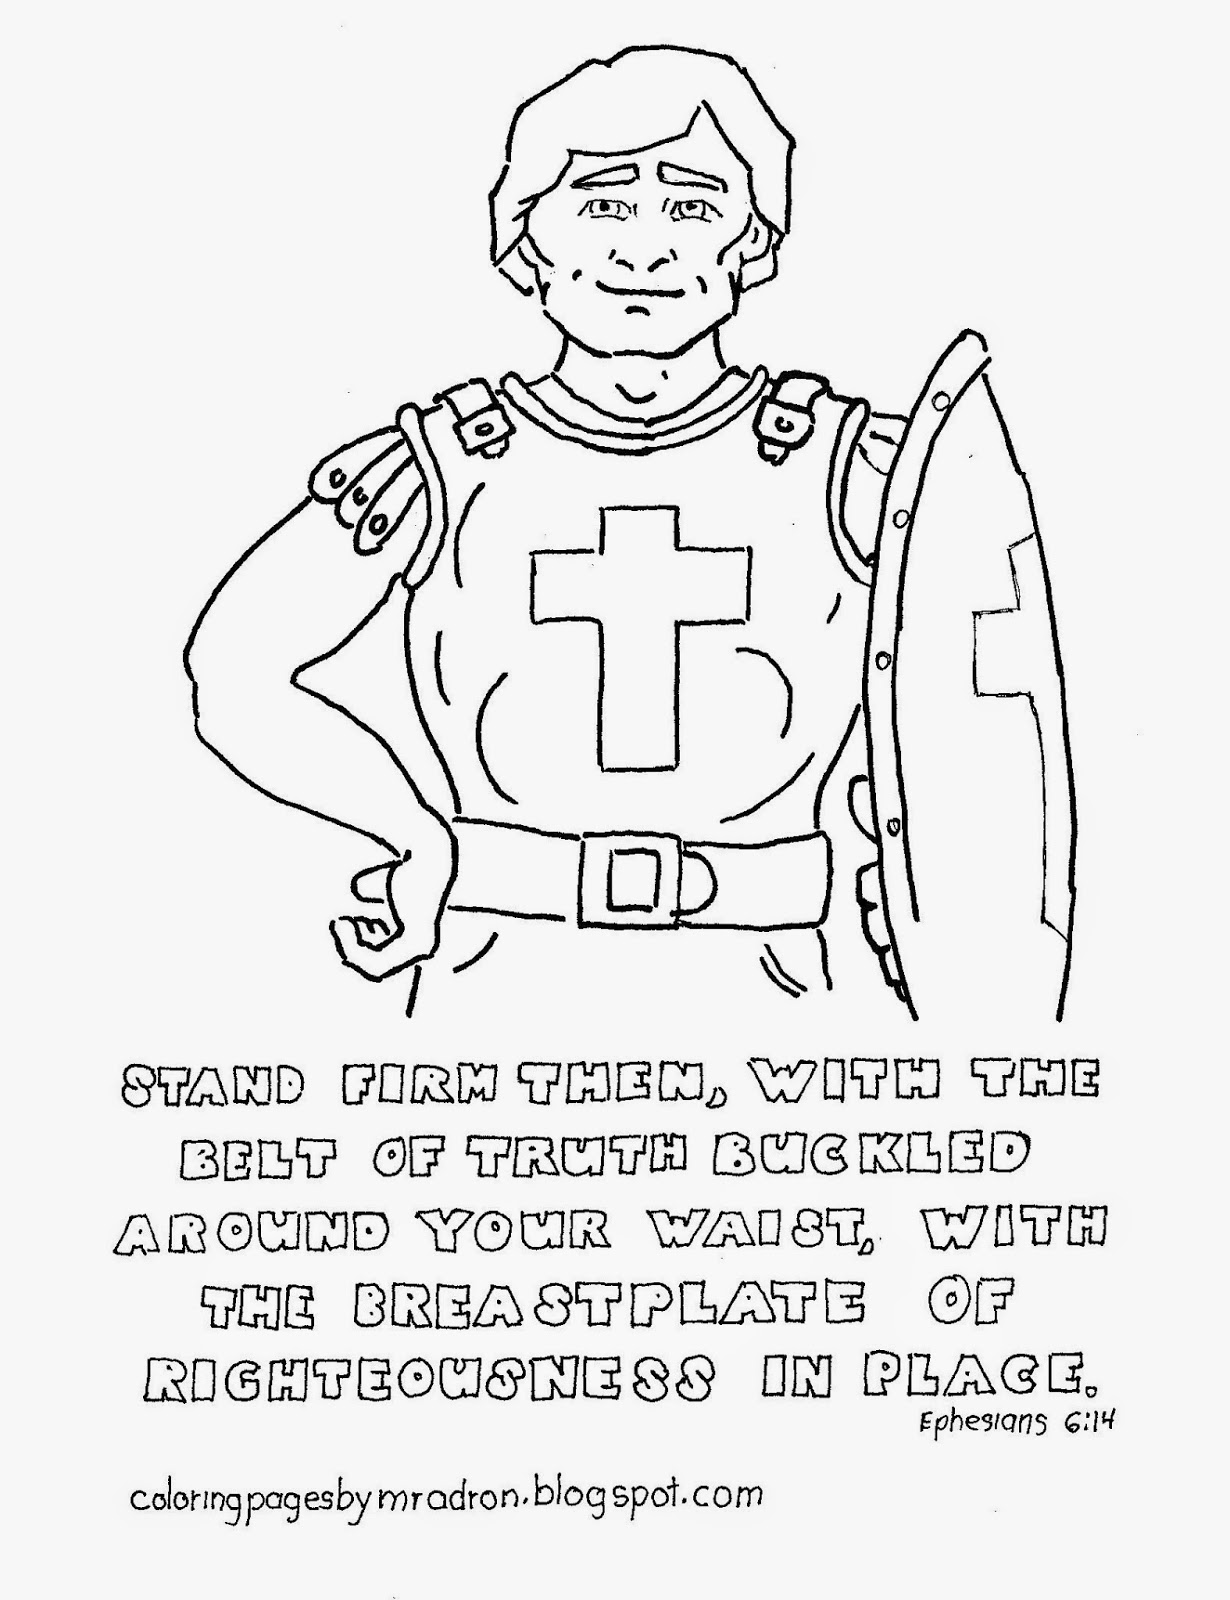 Coloring Pages For Kids By Mr Adron Breastplate Of Righteousness Free Coloring Page